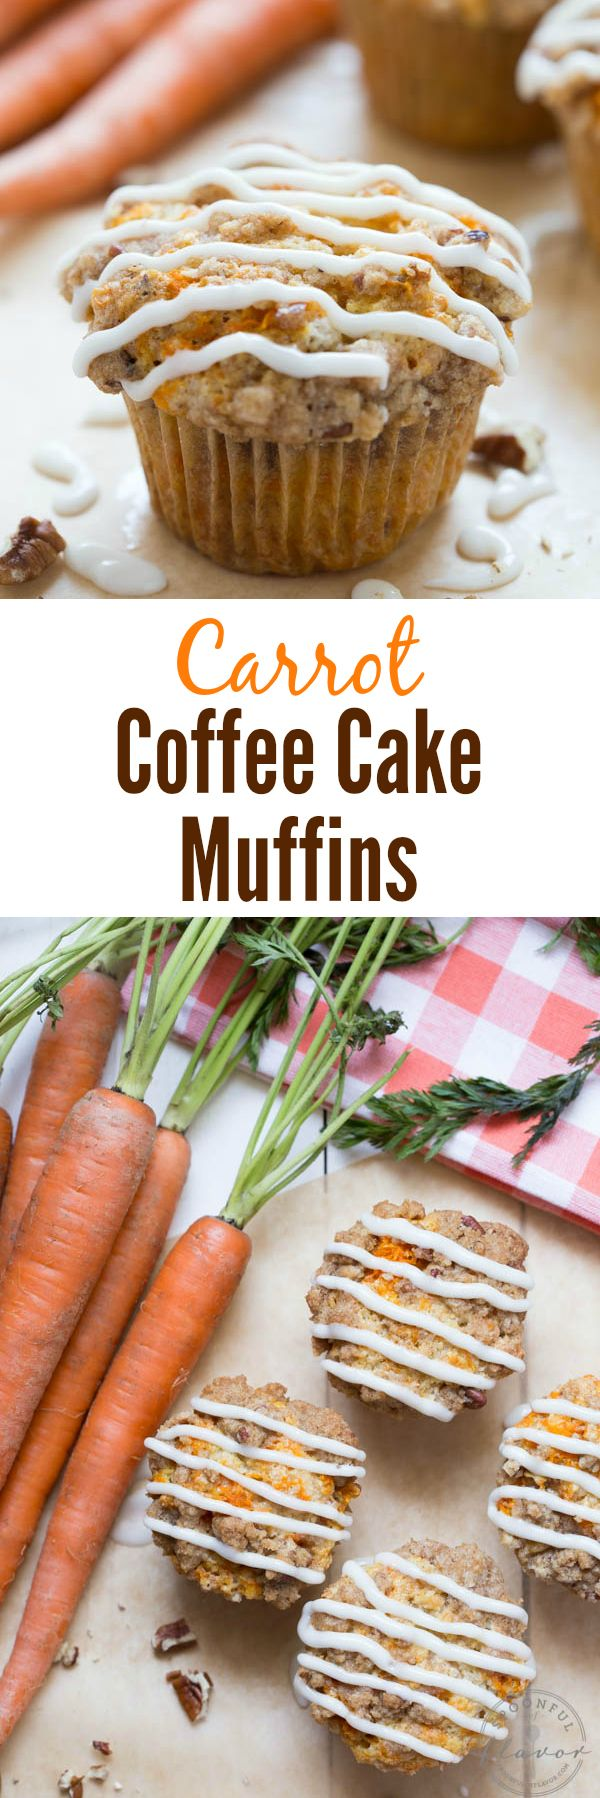 Carrot Coffee Cake Muffins with Cream Cheese Drizzle